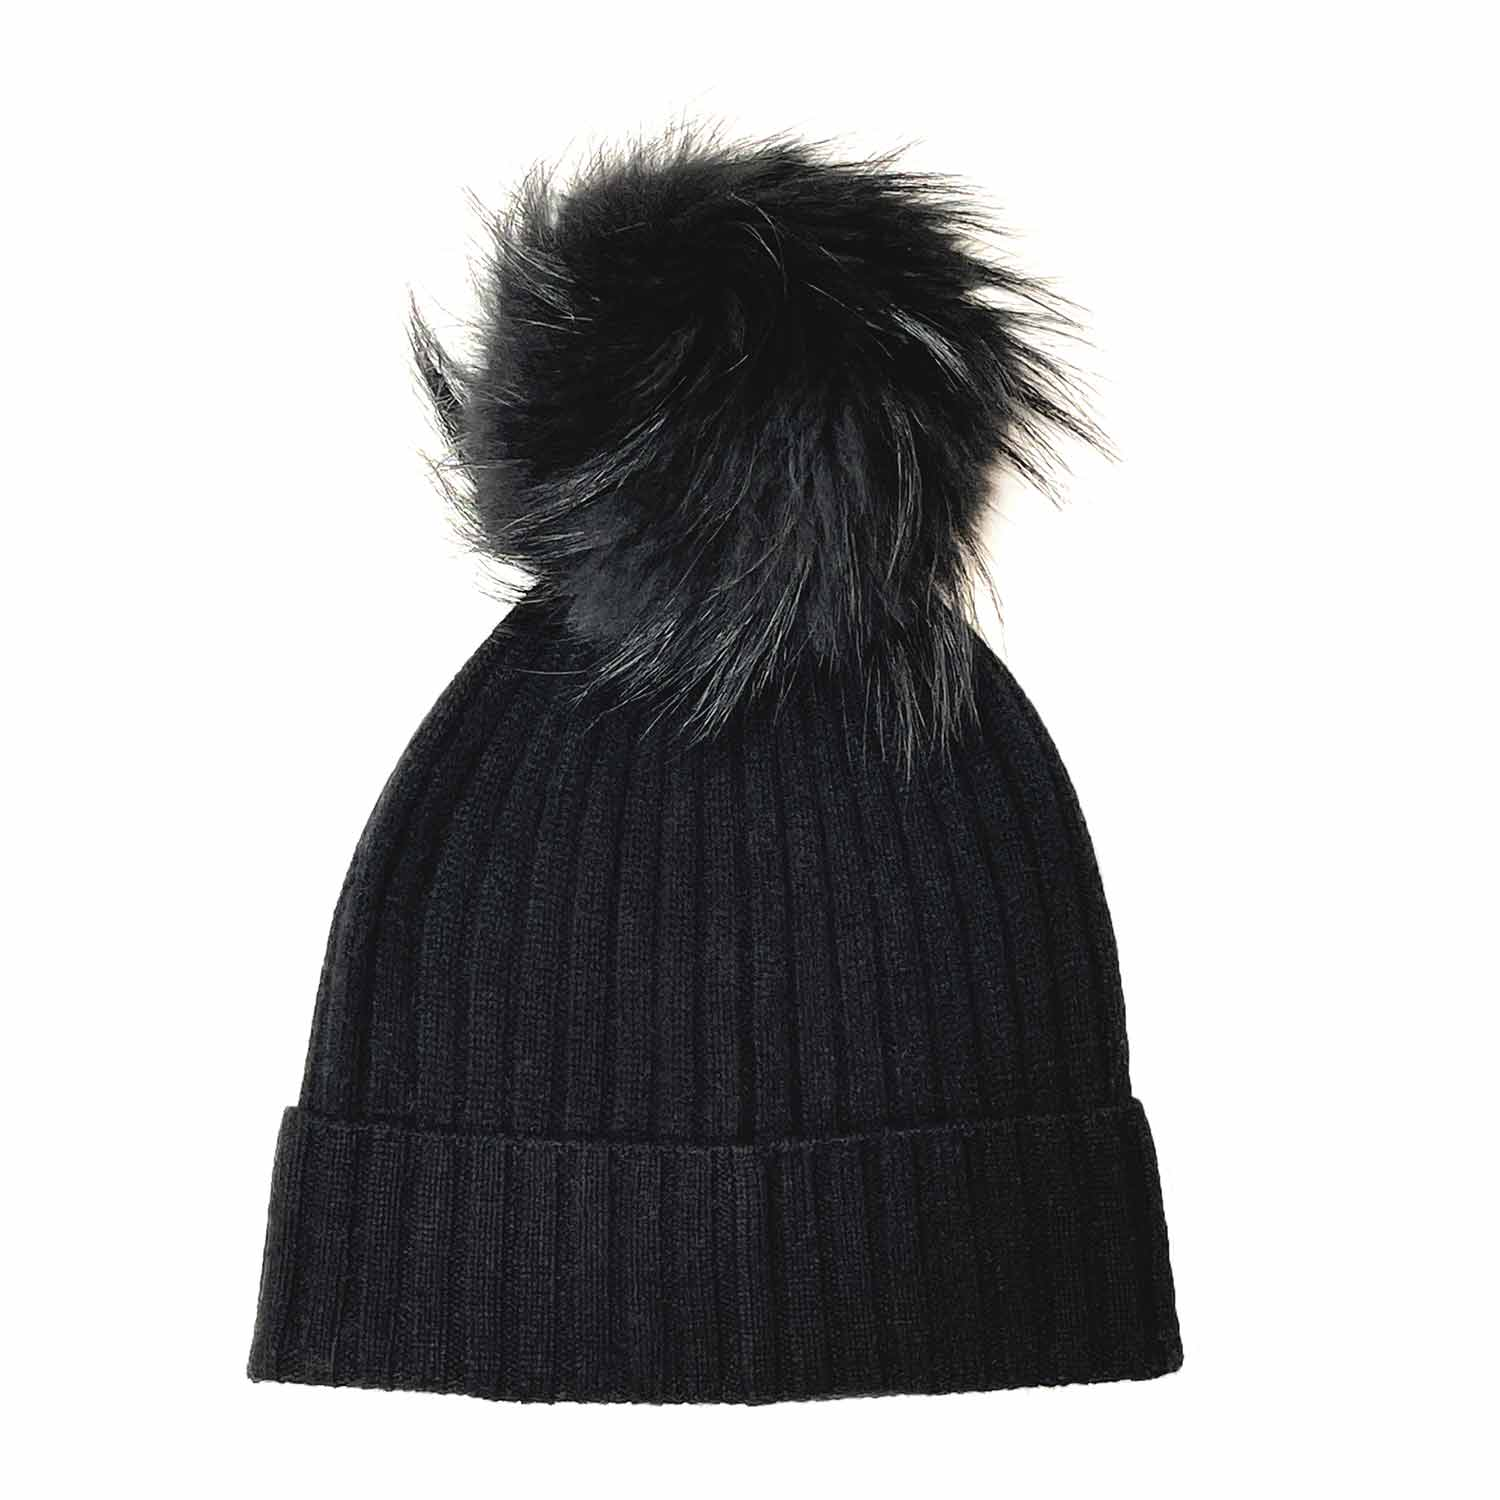 Cashmere Ribbed Hat with Faux Fur Pom Pom-Amicale Cashmere